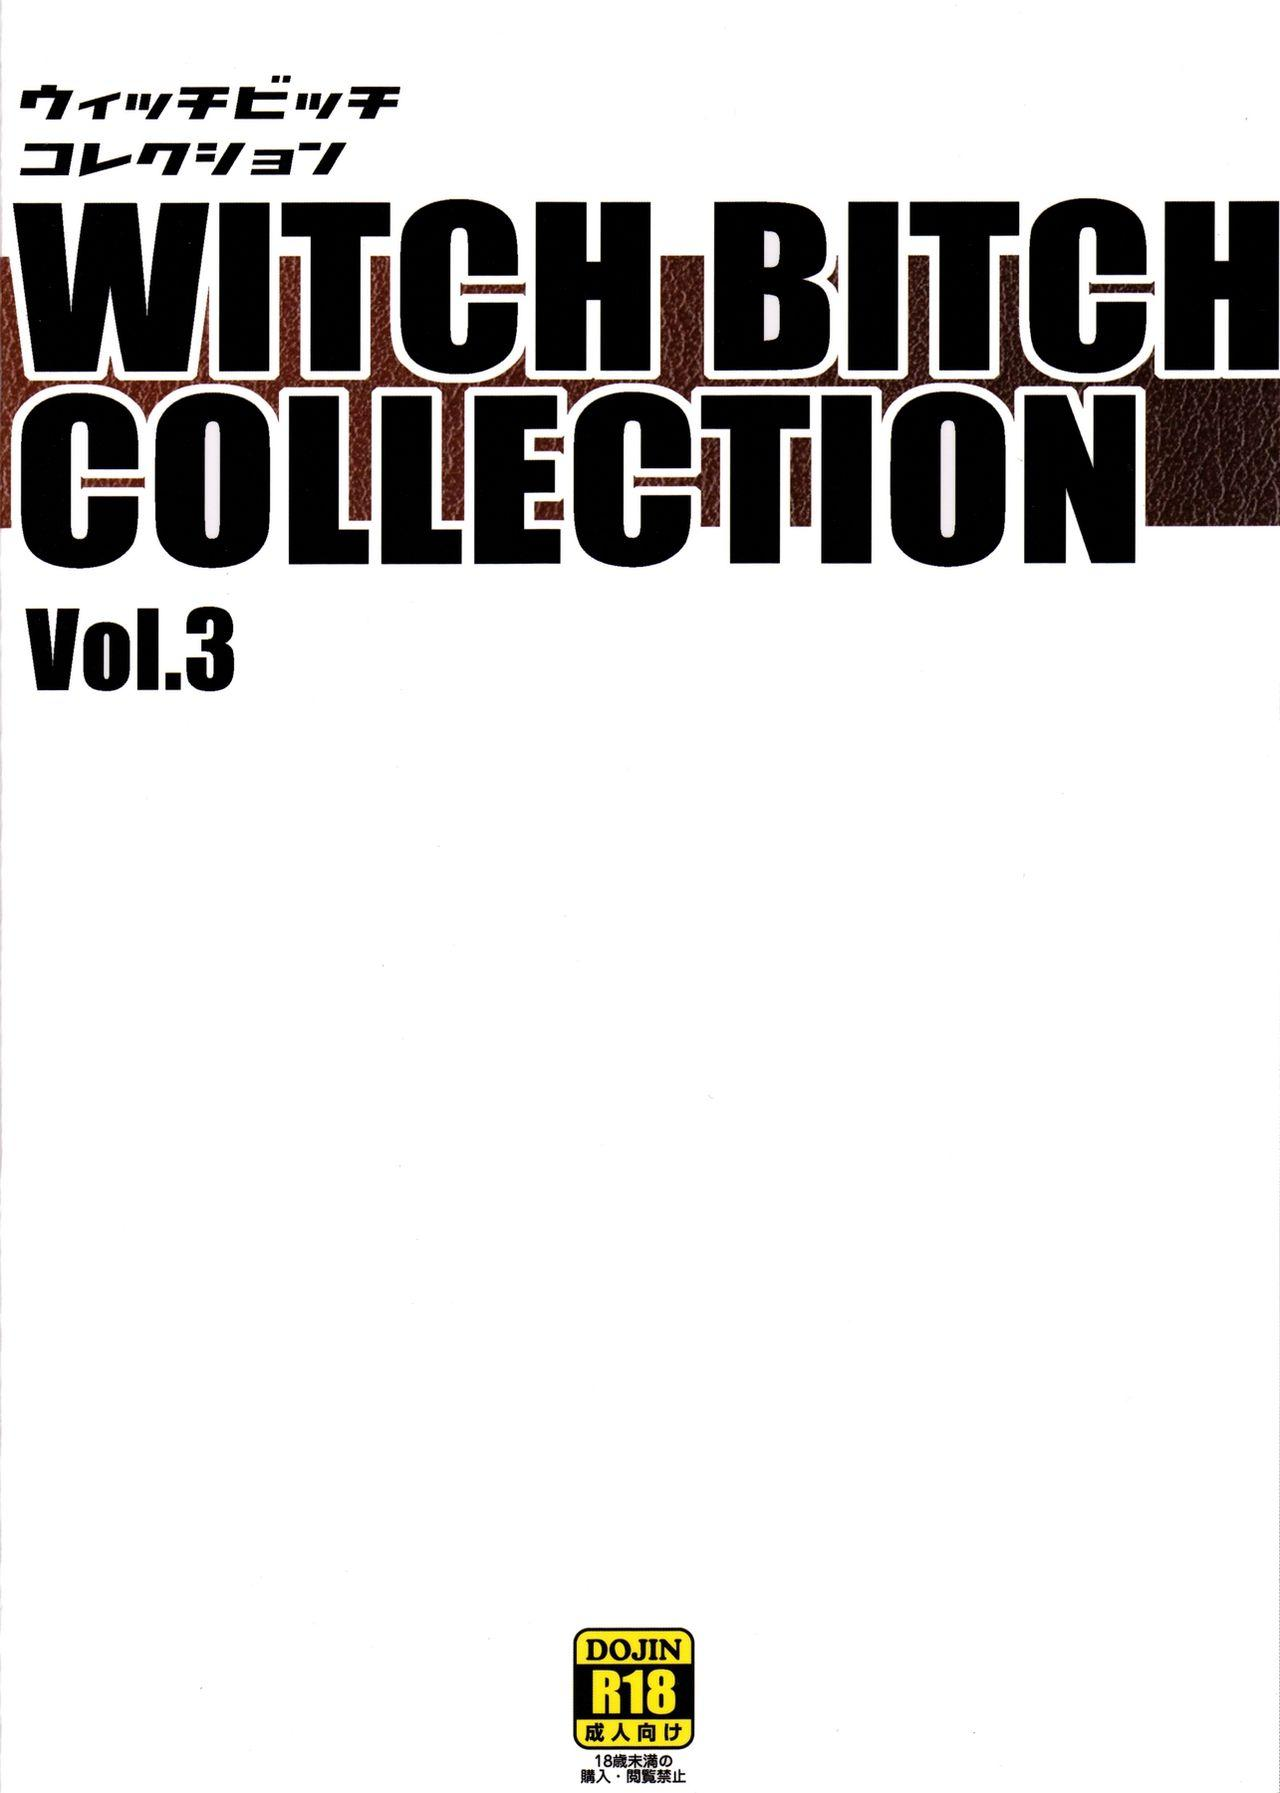 Witch Bitch Collection Vol. 3 49